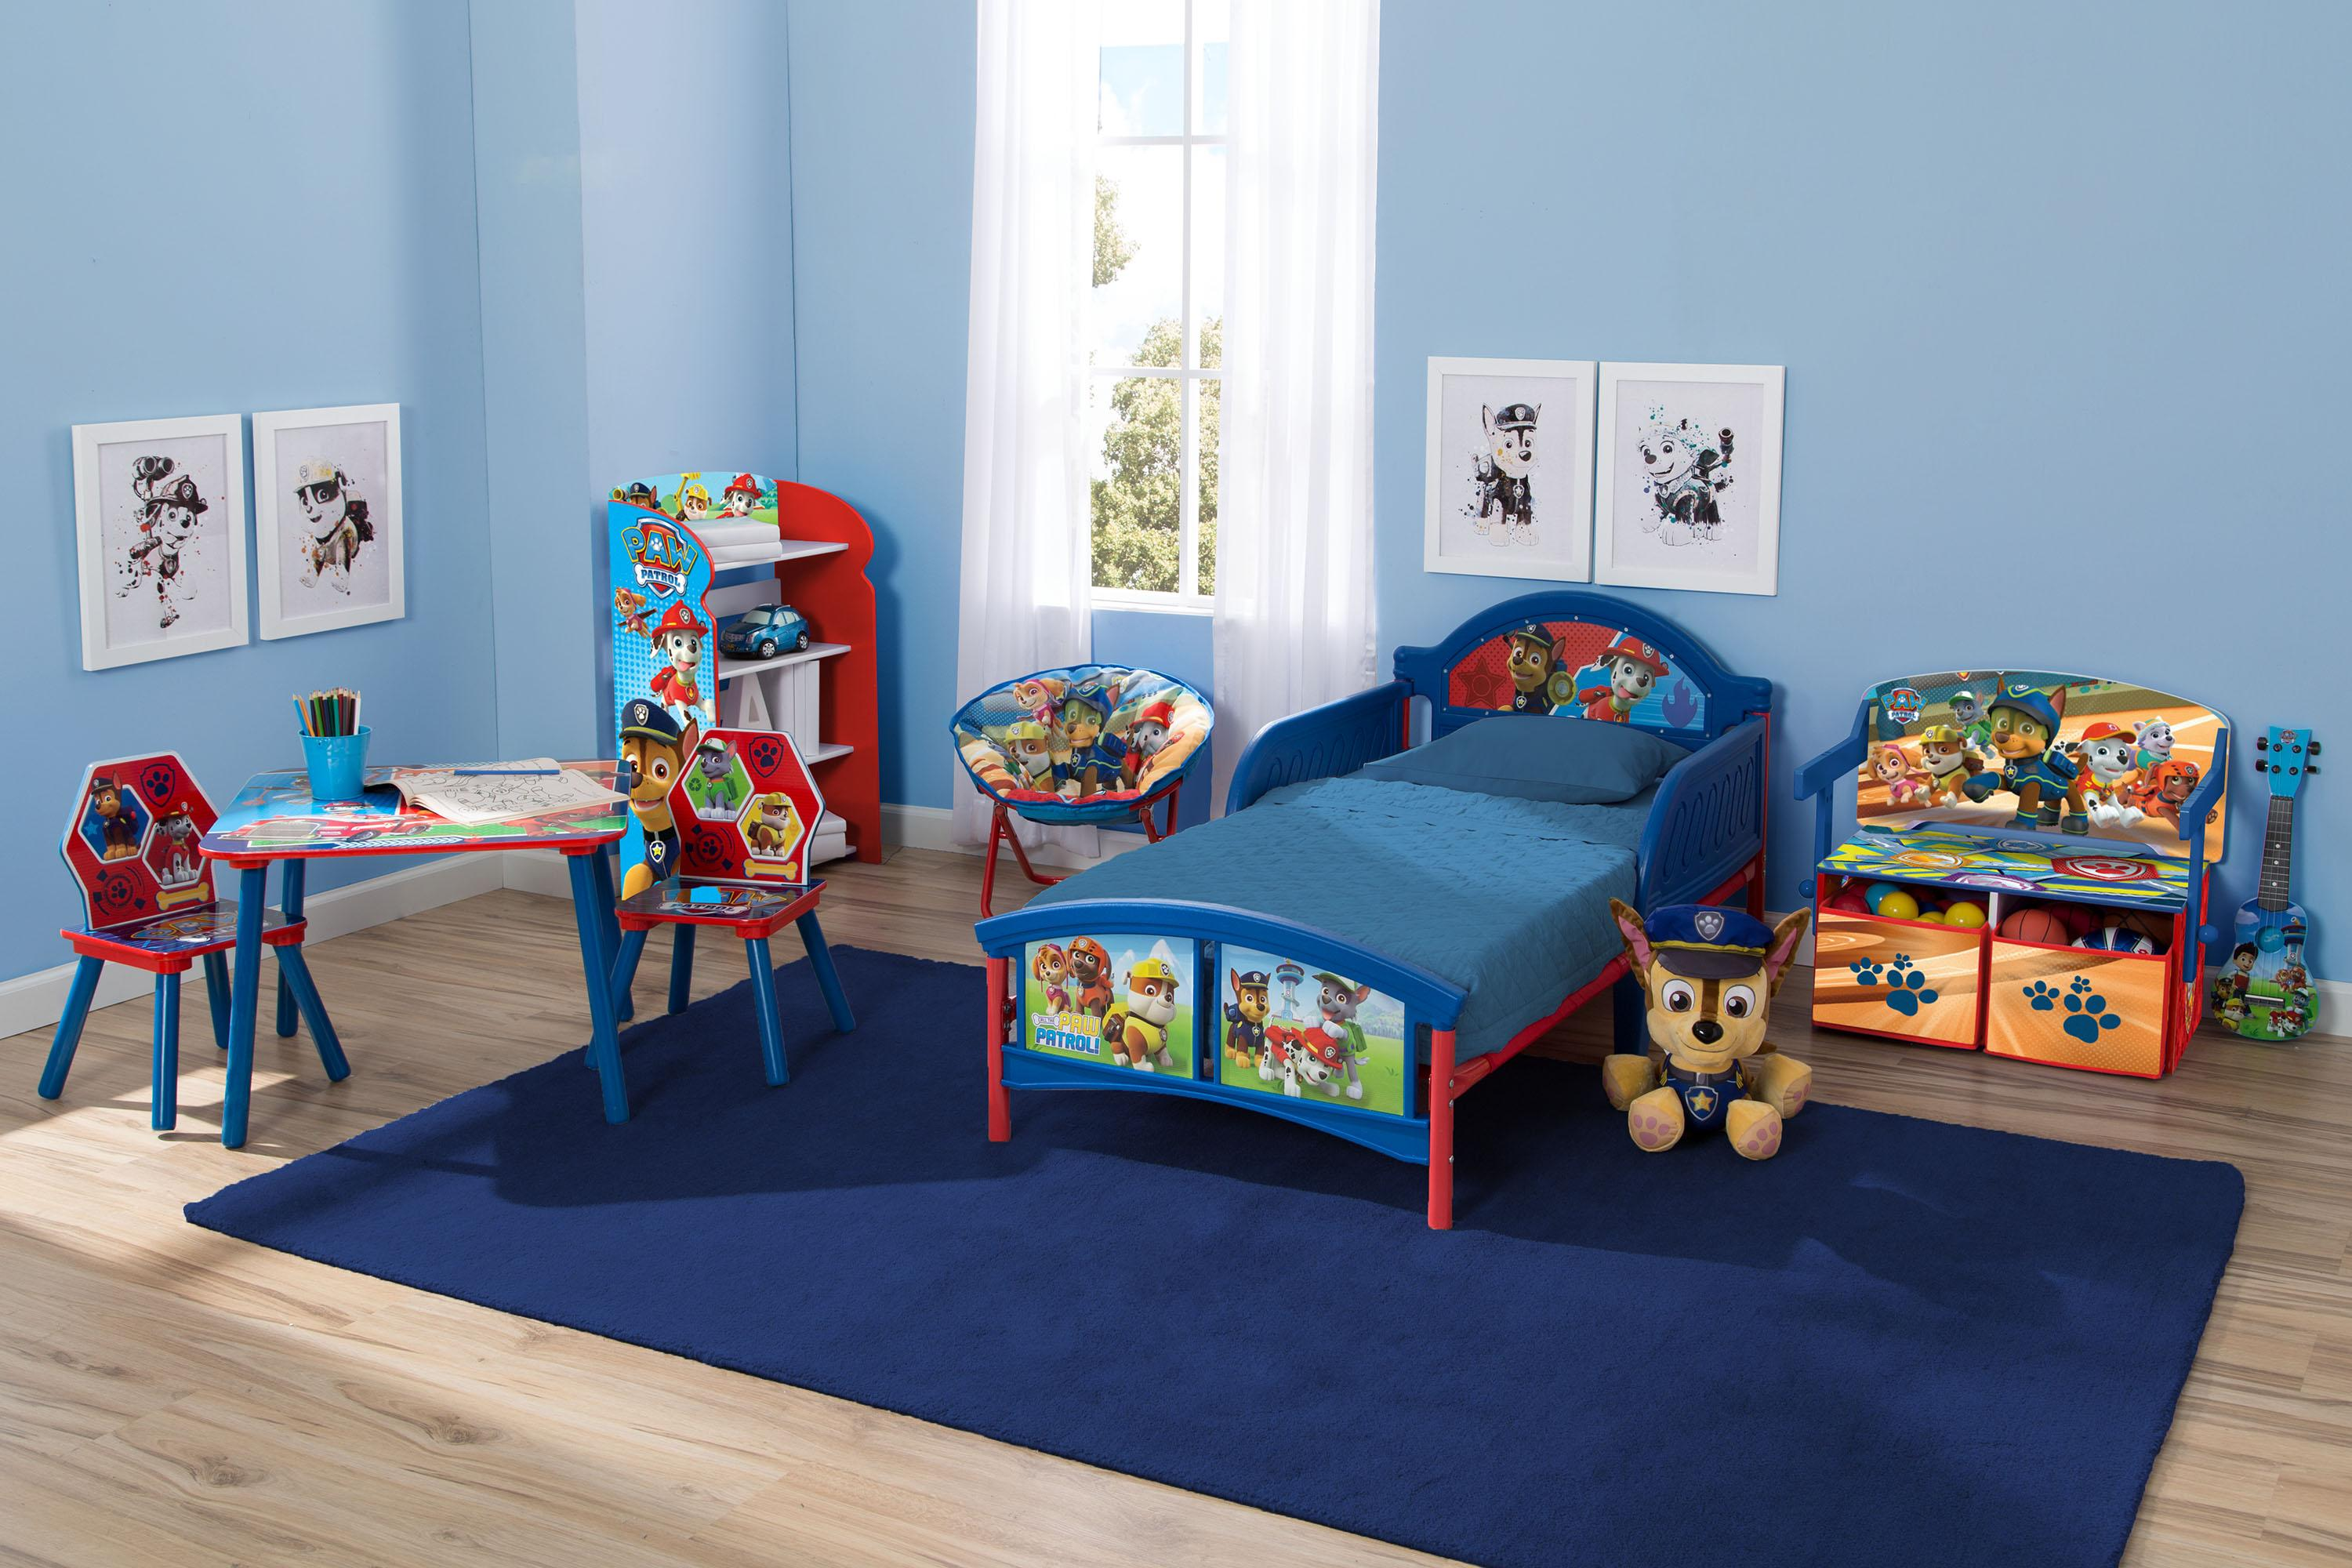 Plastic Toddler Bed From Delta Children